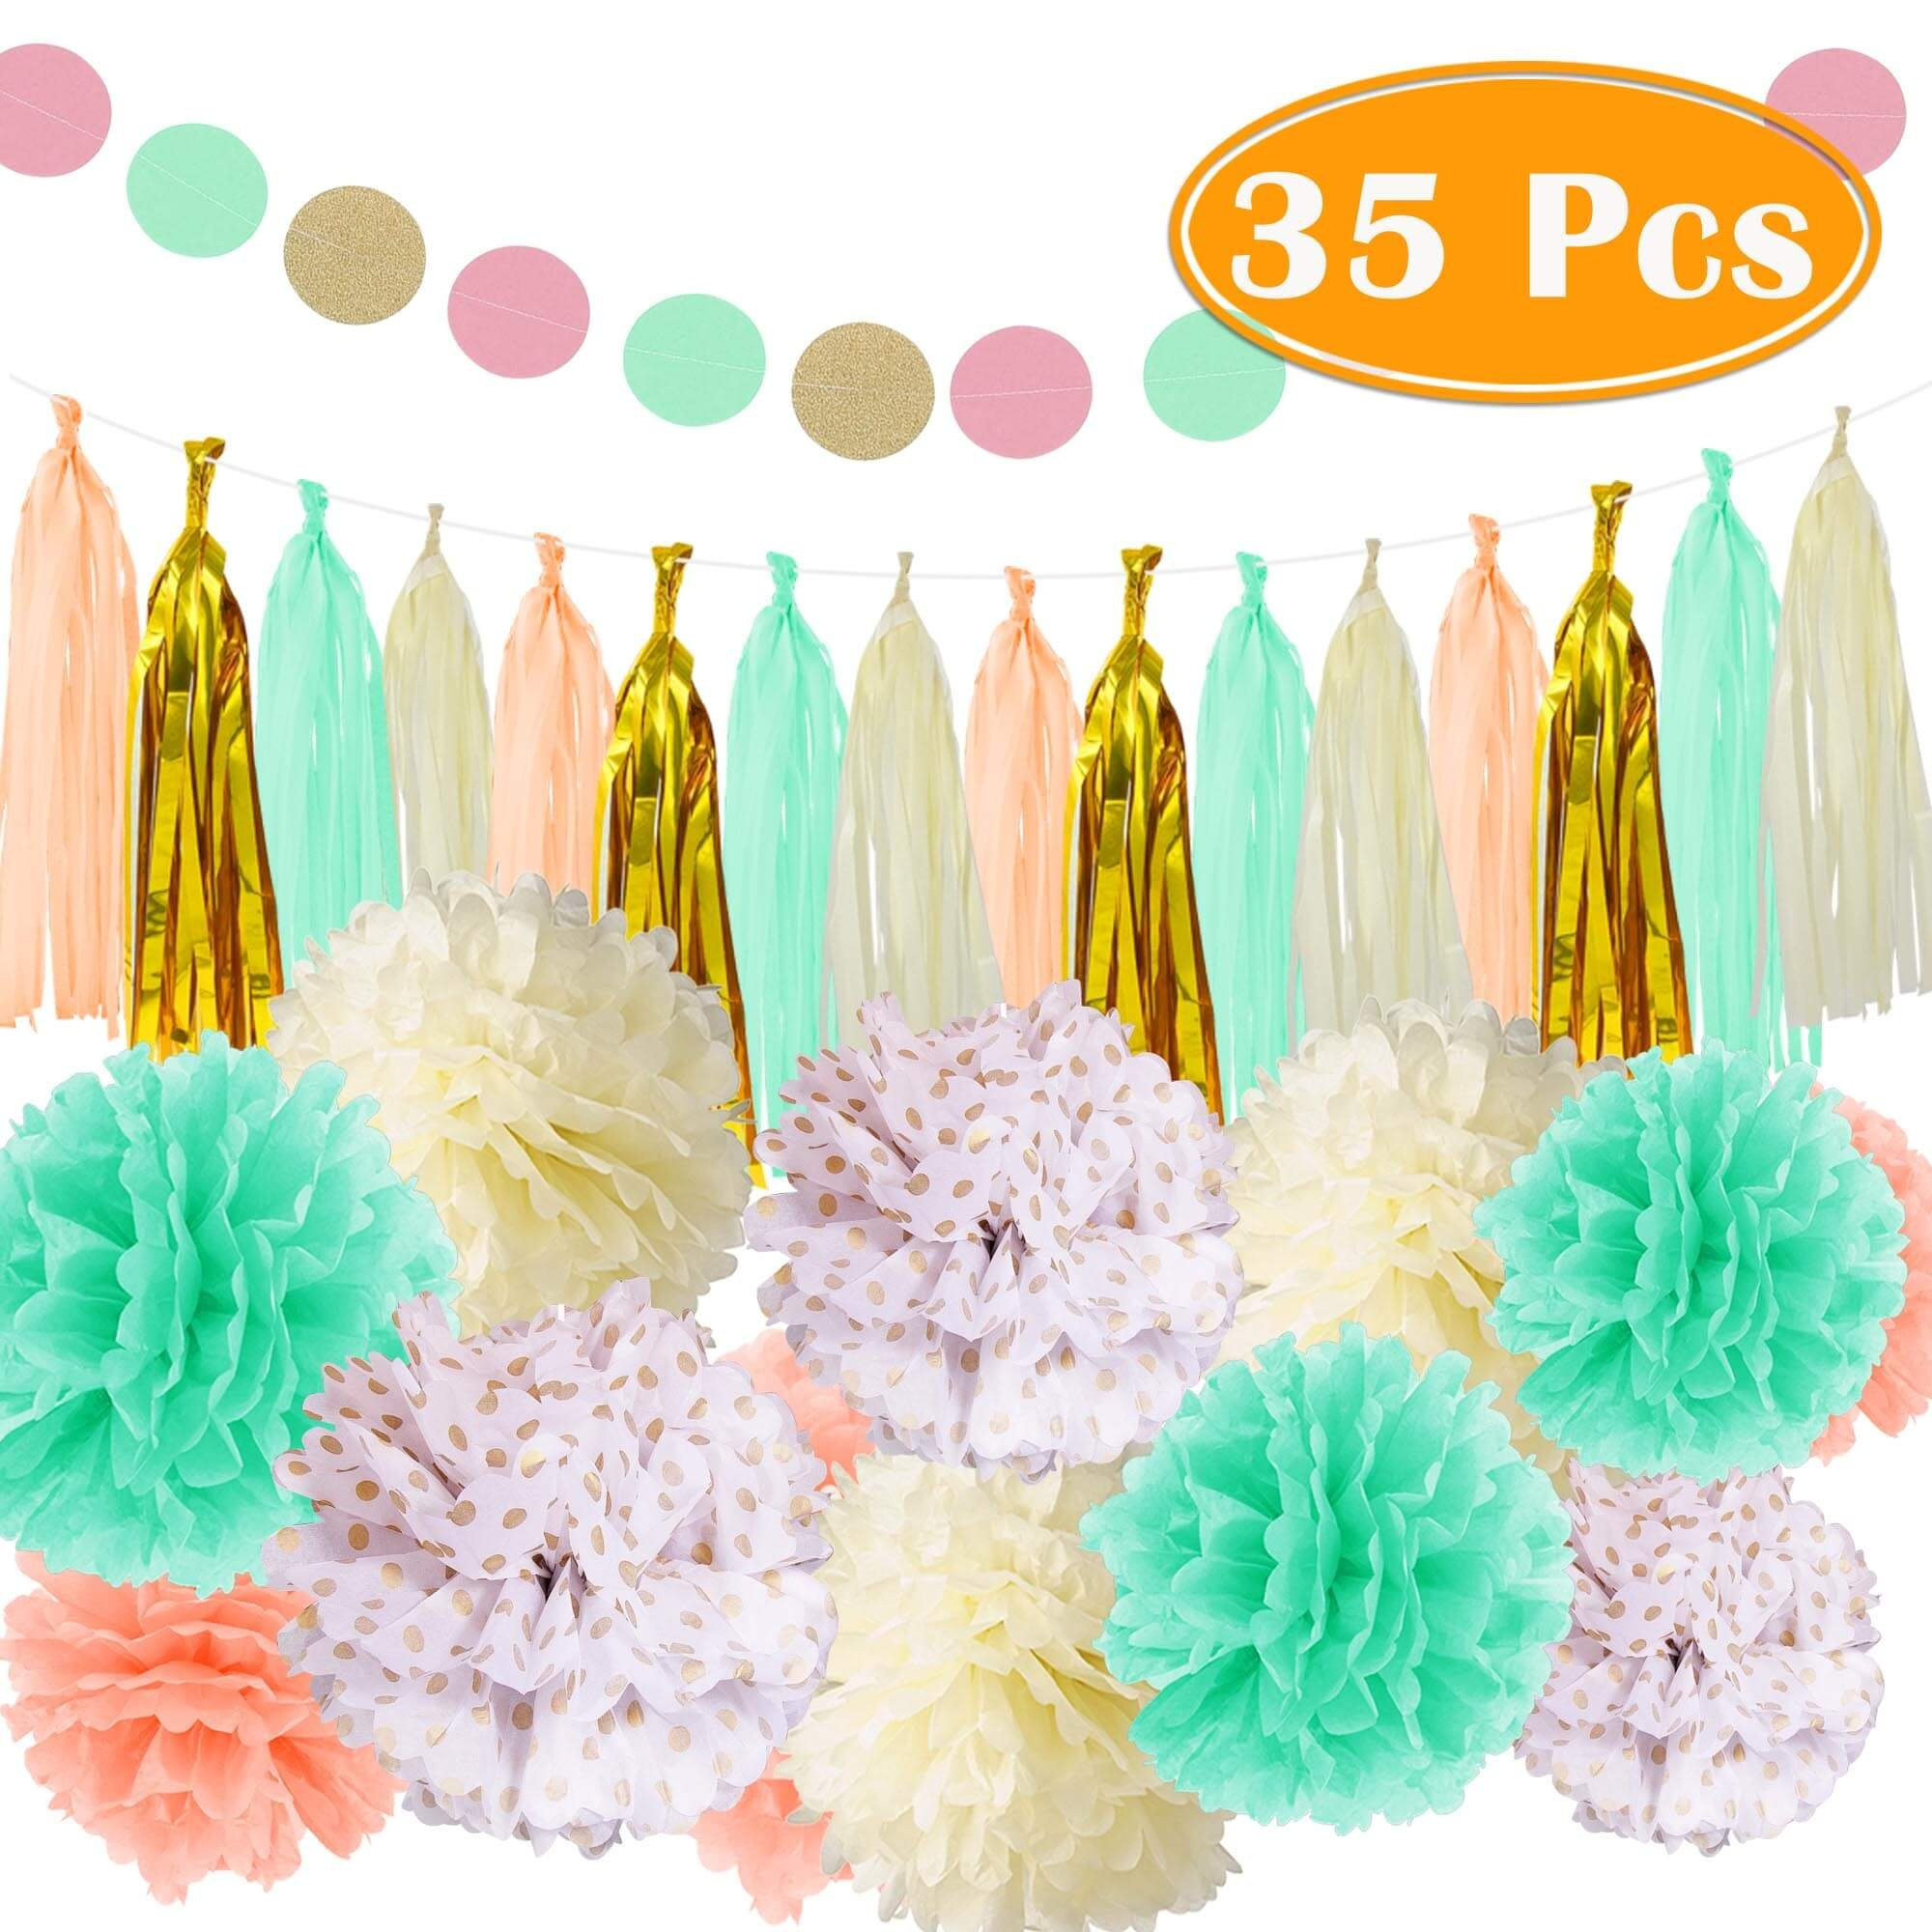 PAXCOO 35 Pcs Mint Gold Tissue Paper Pom Poms Tassel Garland for Baby Shower Party Decorations by PAXCOO